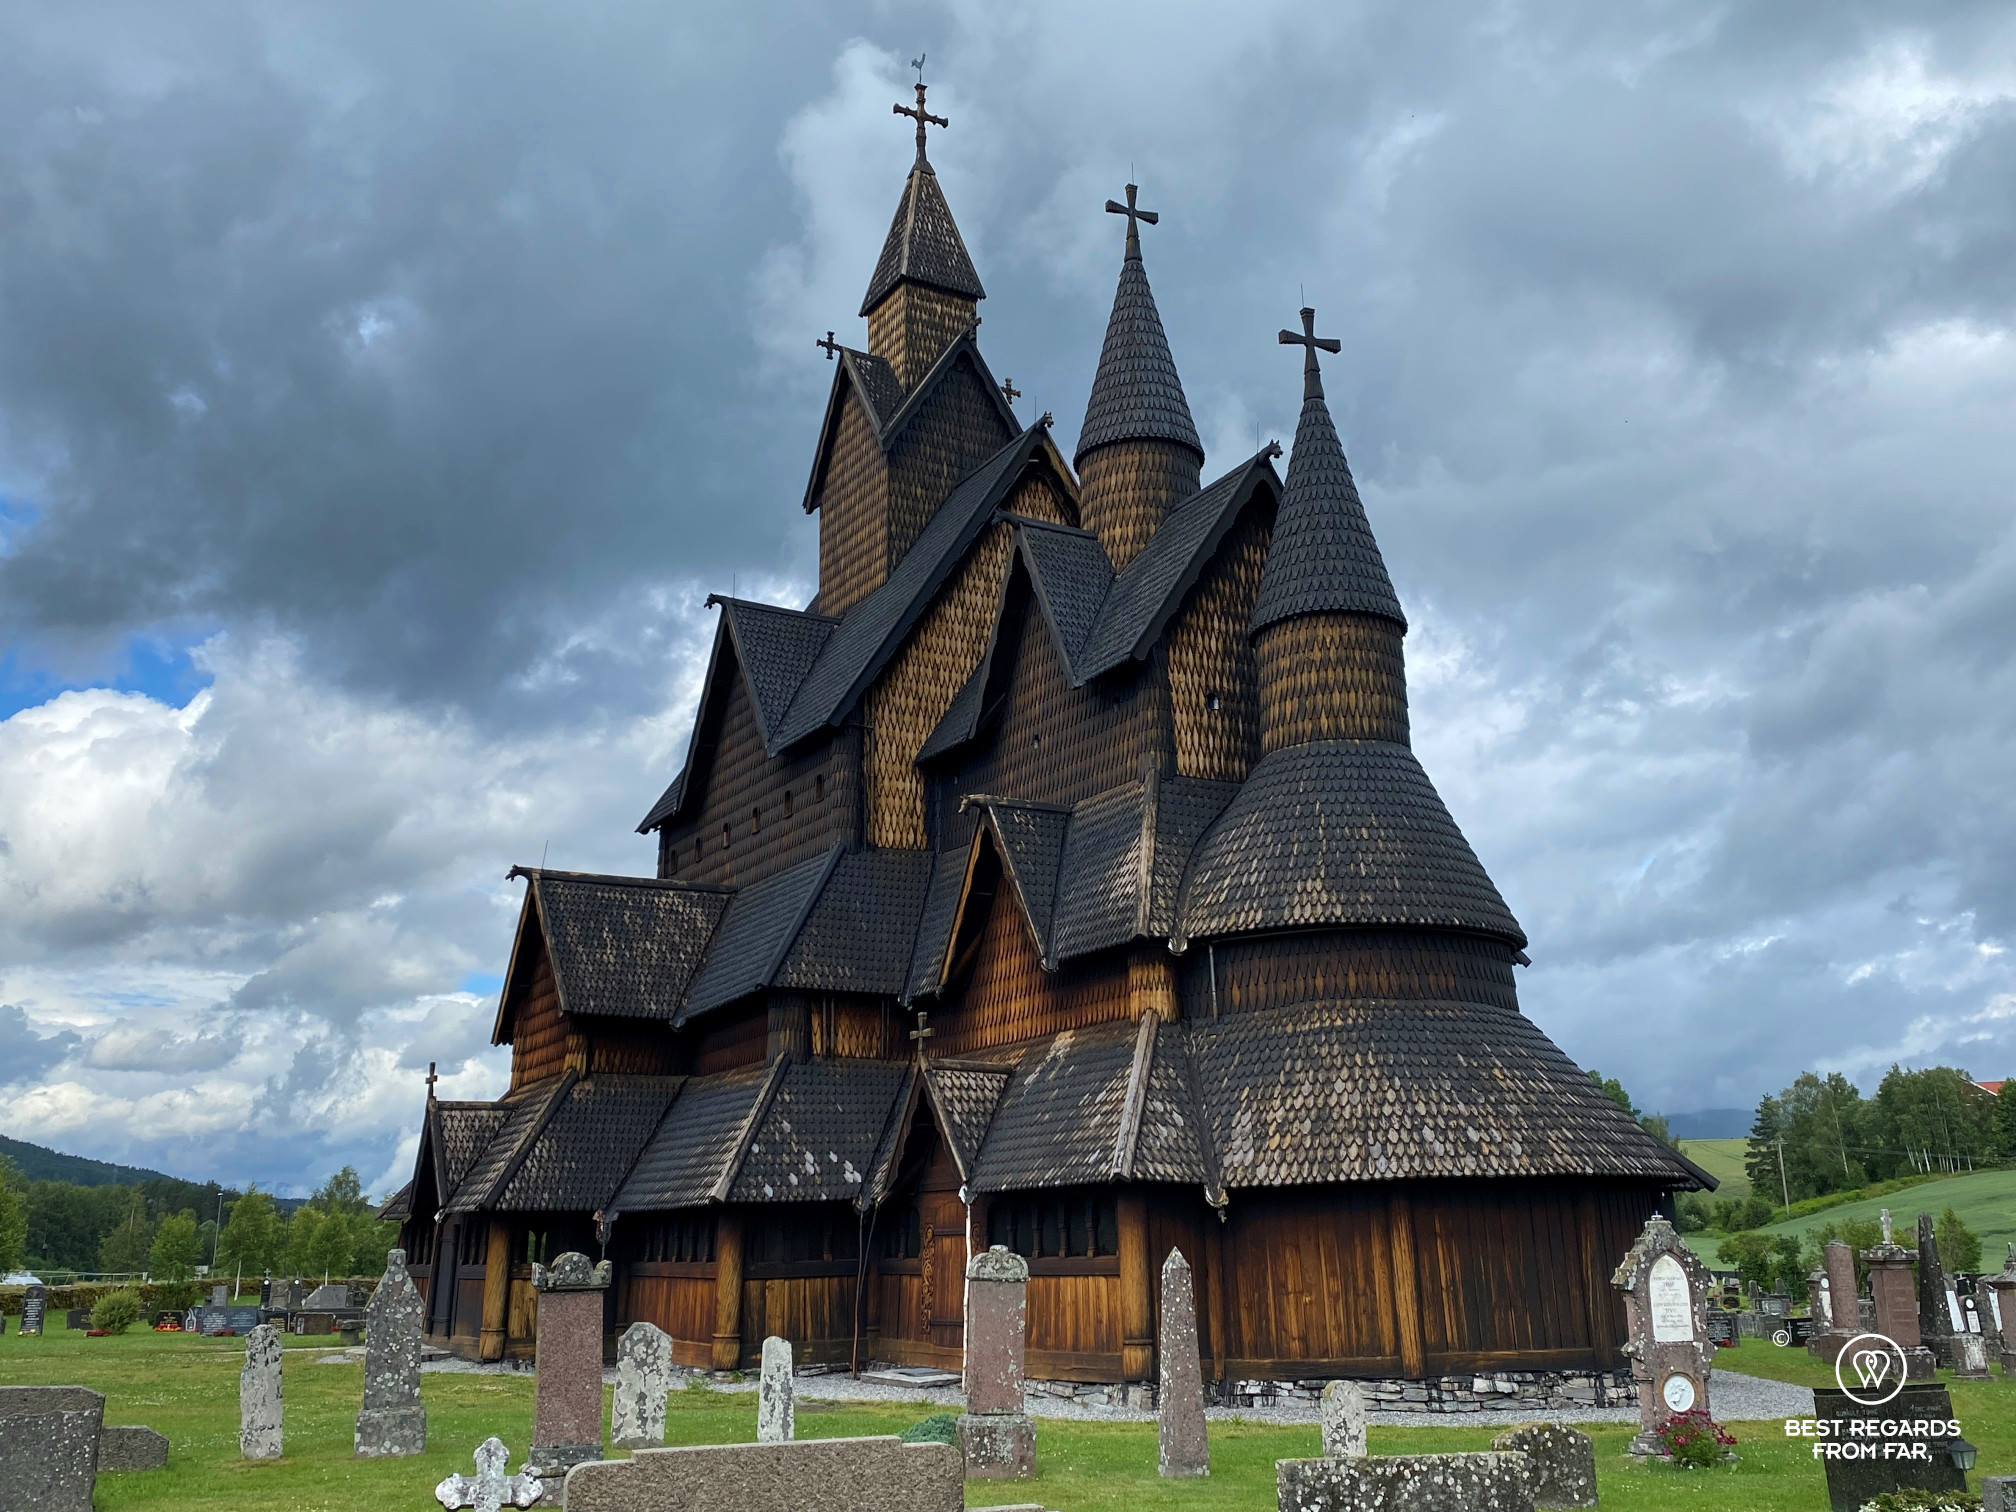 Majestic Heddal Stave Church against a threatening sky